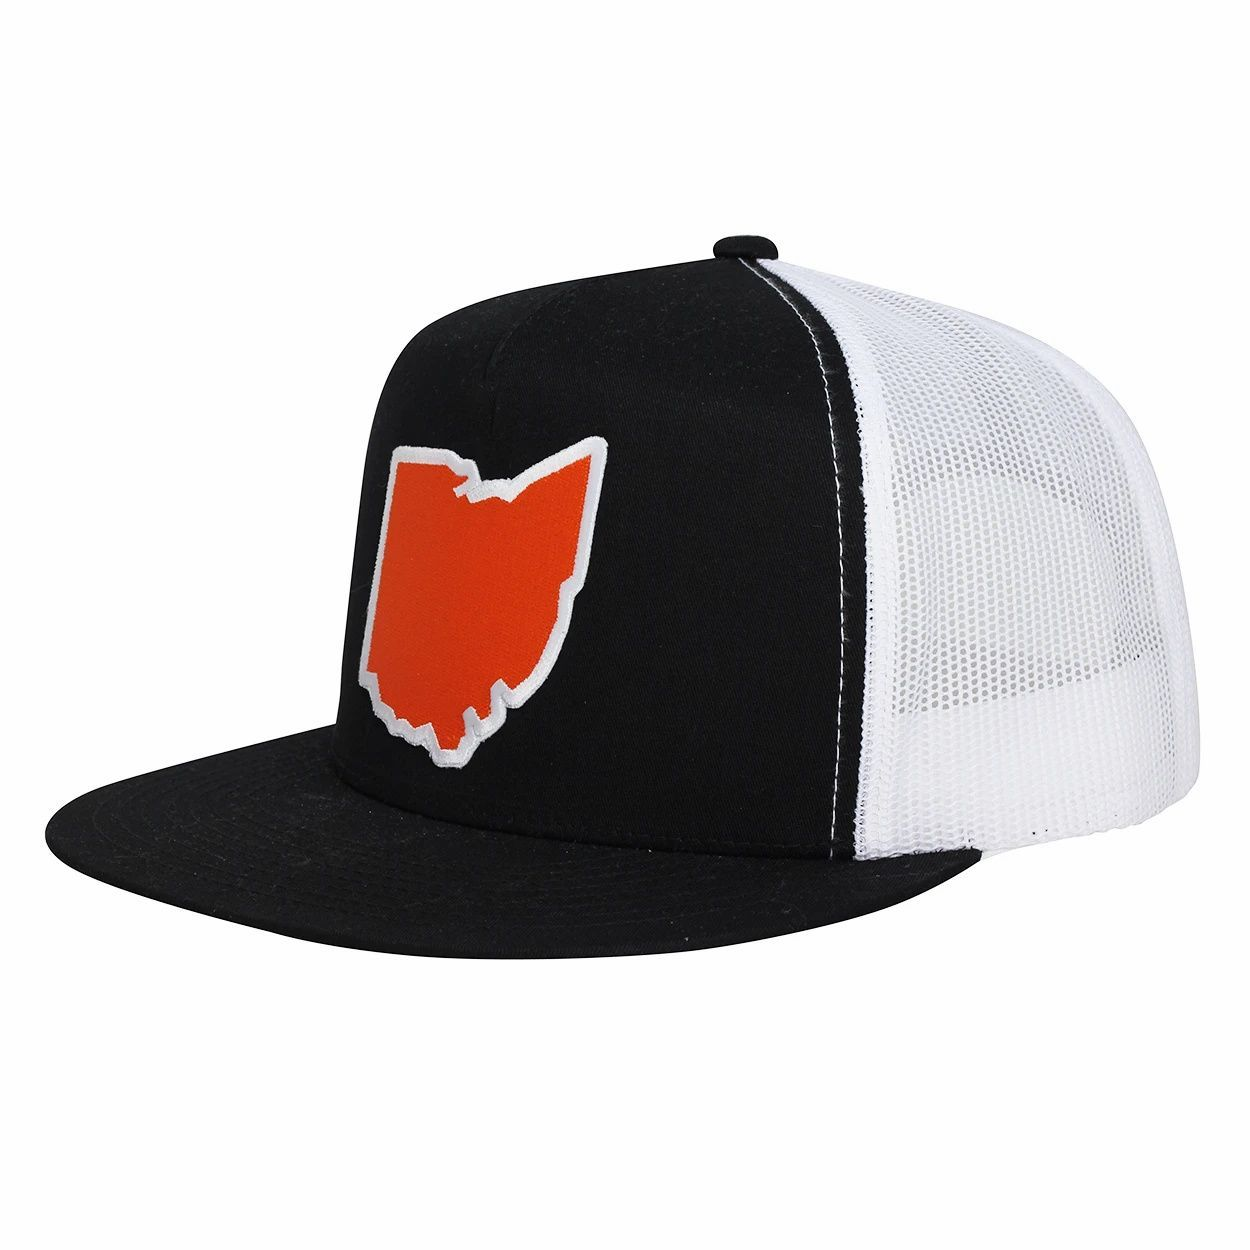 Snap Back Ohio Hat In 2020 Hats Hat Fashion Shopping Outfit